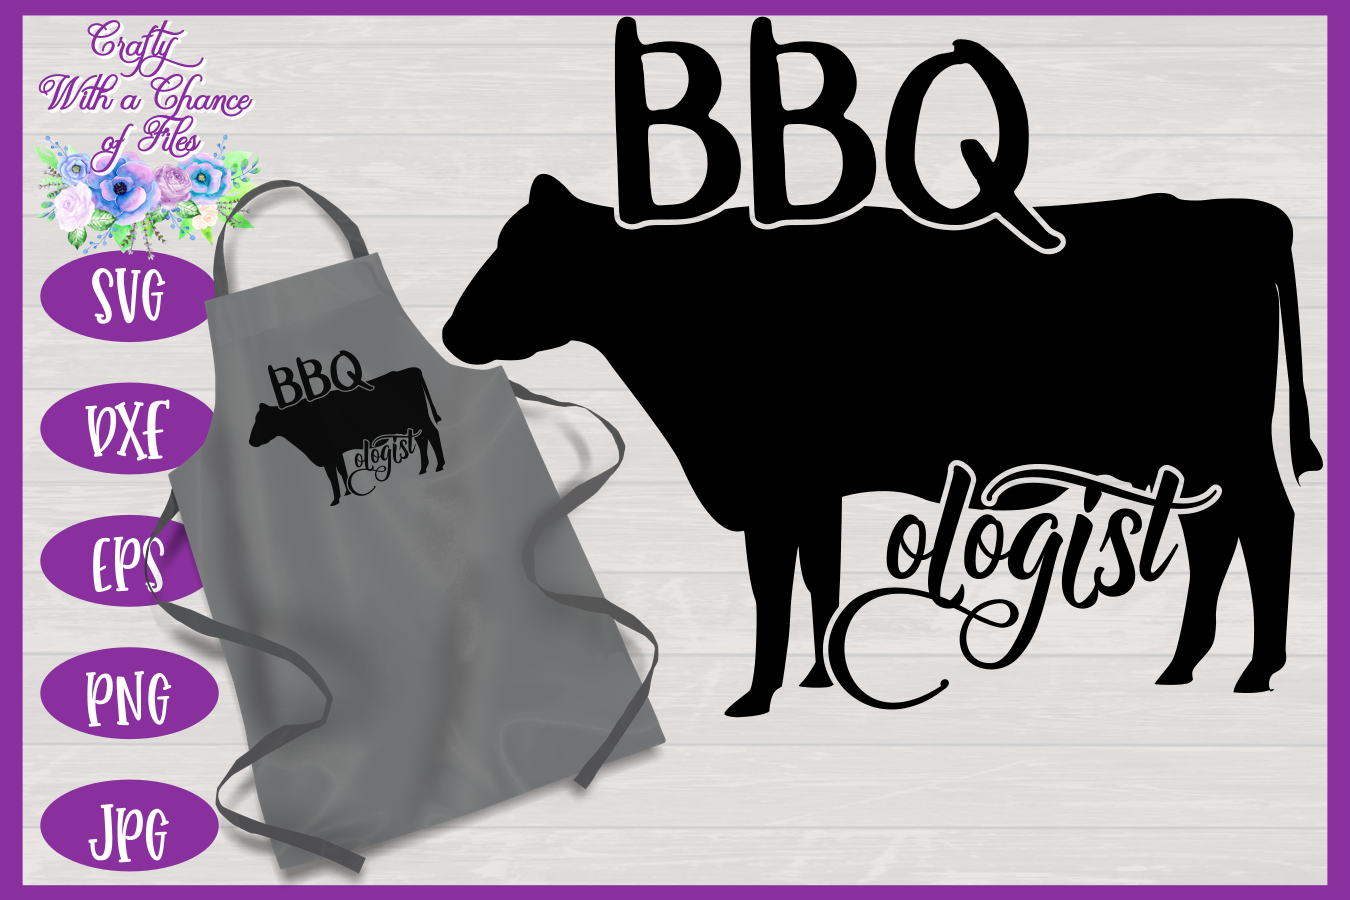 BBQ Grill Apron Bundle | Funny SVG Bundle example image 10